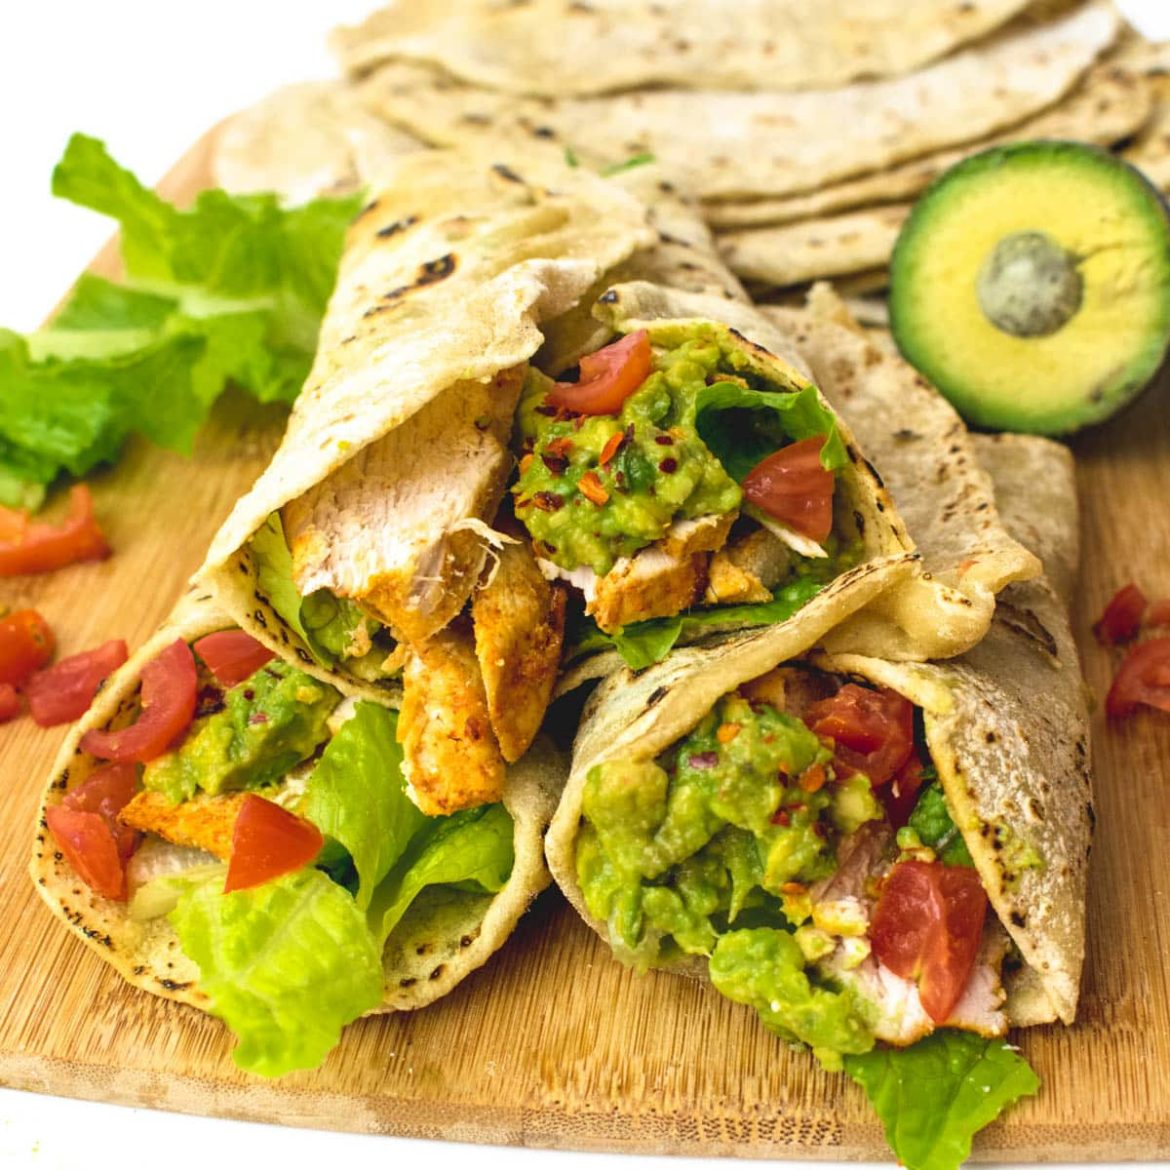 Chicken Avocado Wraps Recipe